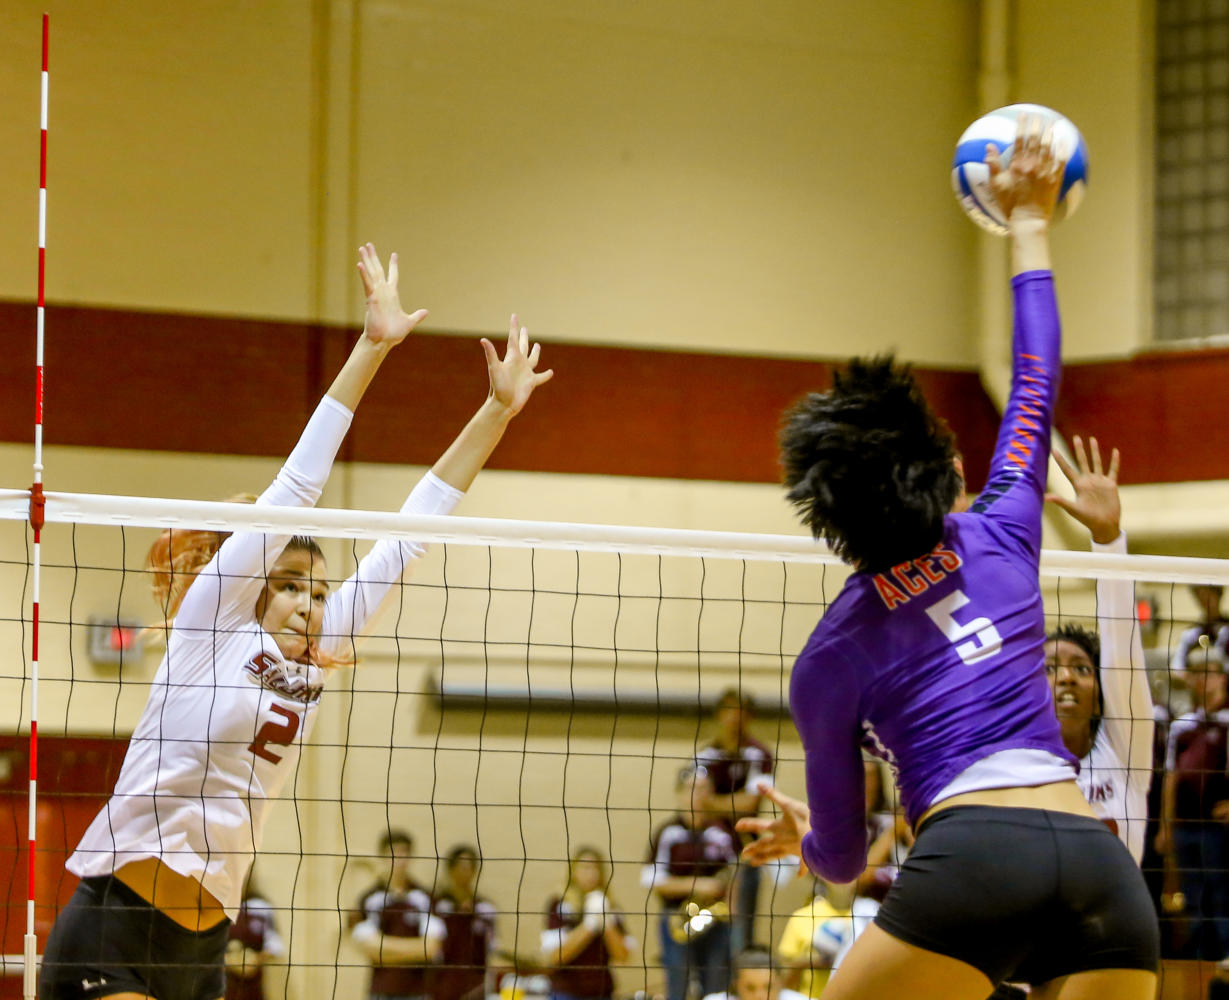 Evansville sophomore defensive hitter Rachel Tam returns the ball during the Saluki's winning game against the Evansville Purple Aces Friday, Sept. 29, 2017, at Davies Gym in Carbondale. (Brian Muñoz | @BrianMMunoz)